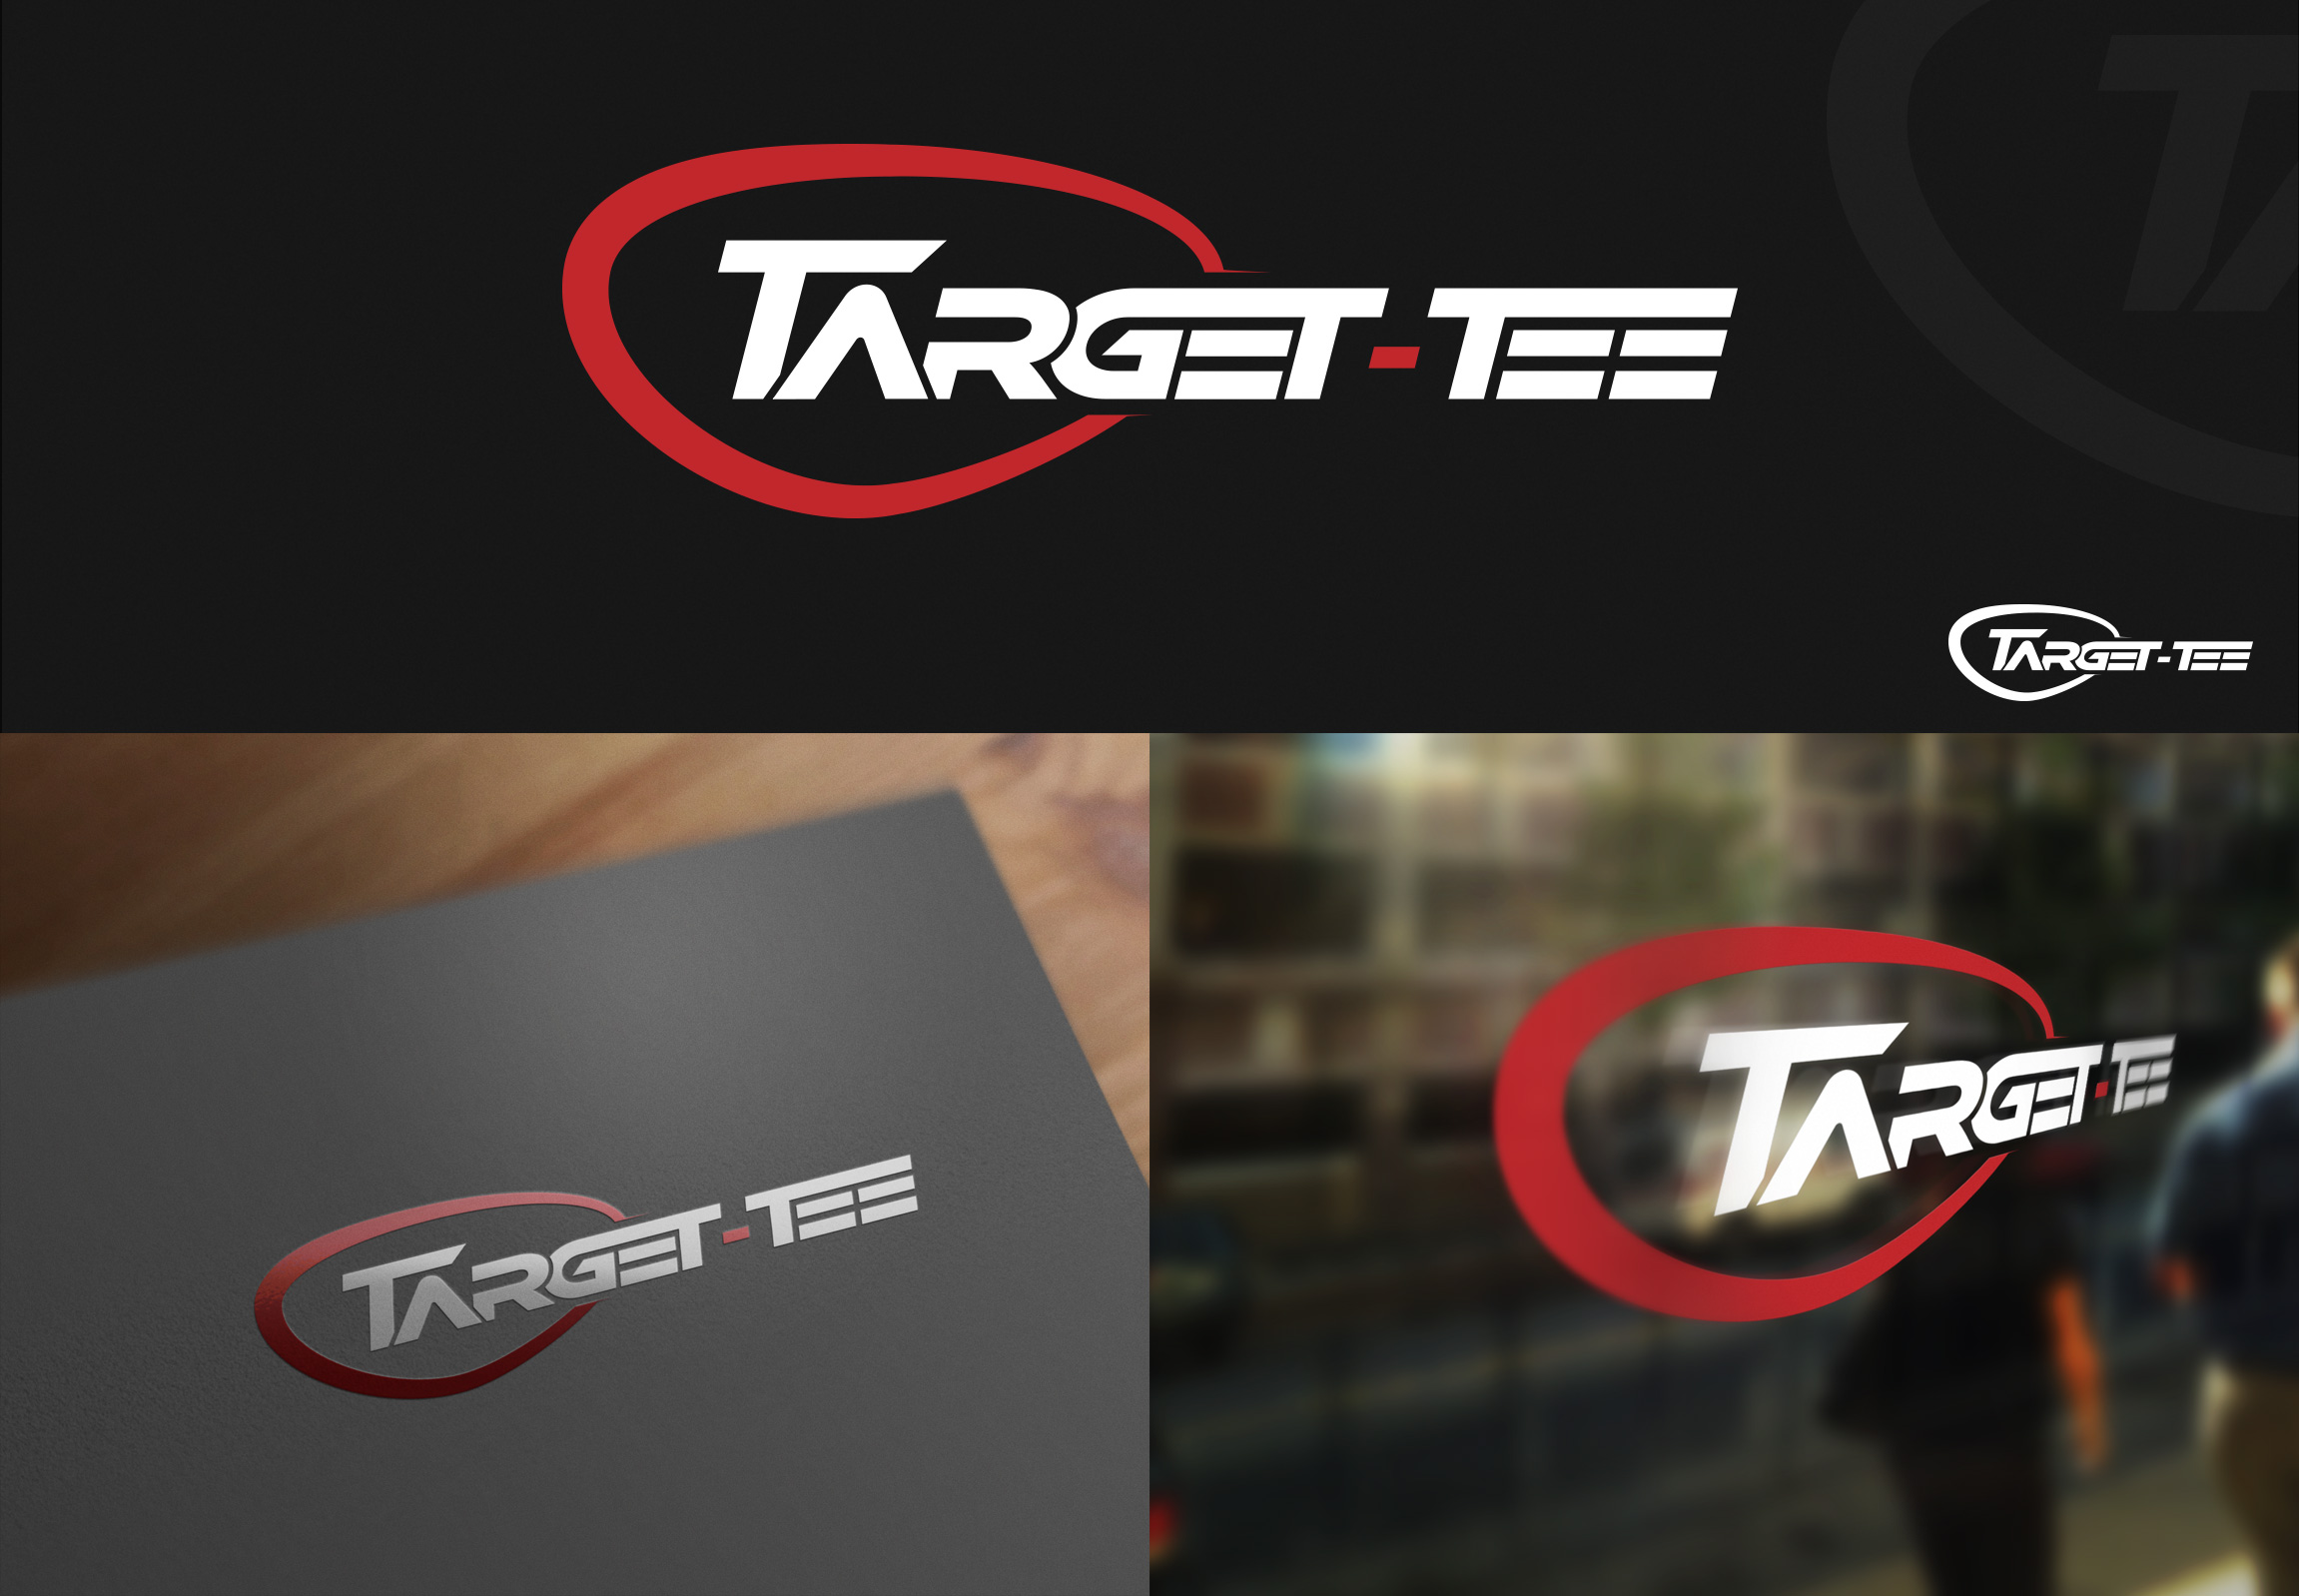 Logo Design by olii - Entry No. 109 in the Logo Design Contest Imaginative Logo Design for TARGET-TEE.